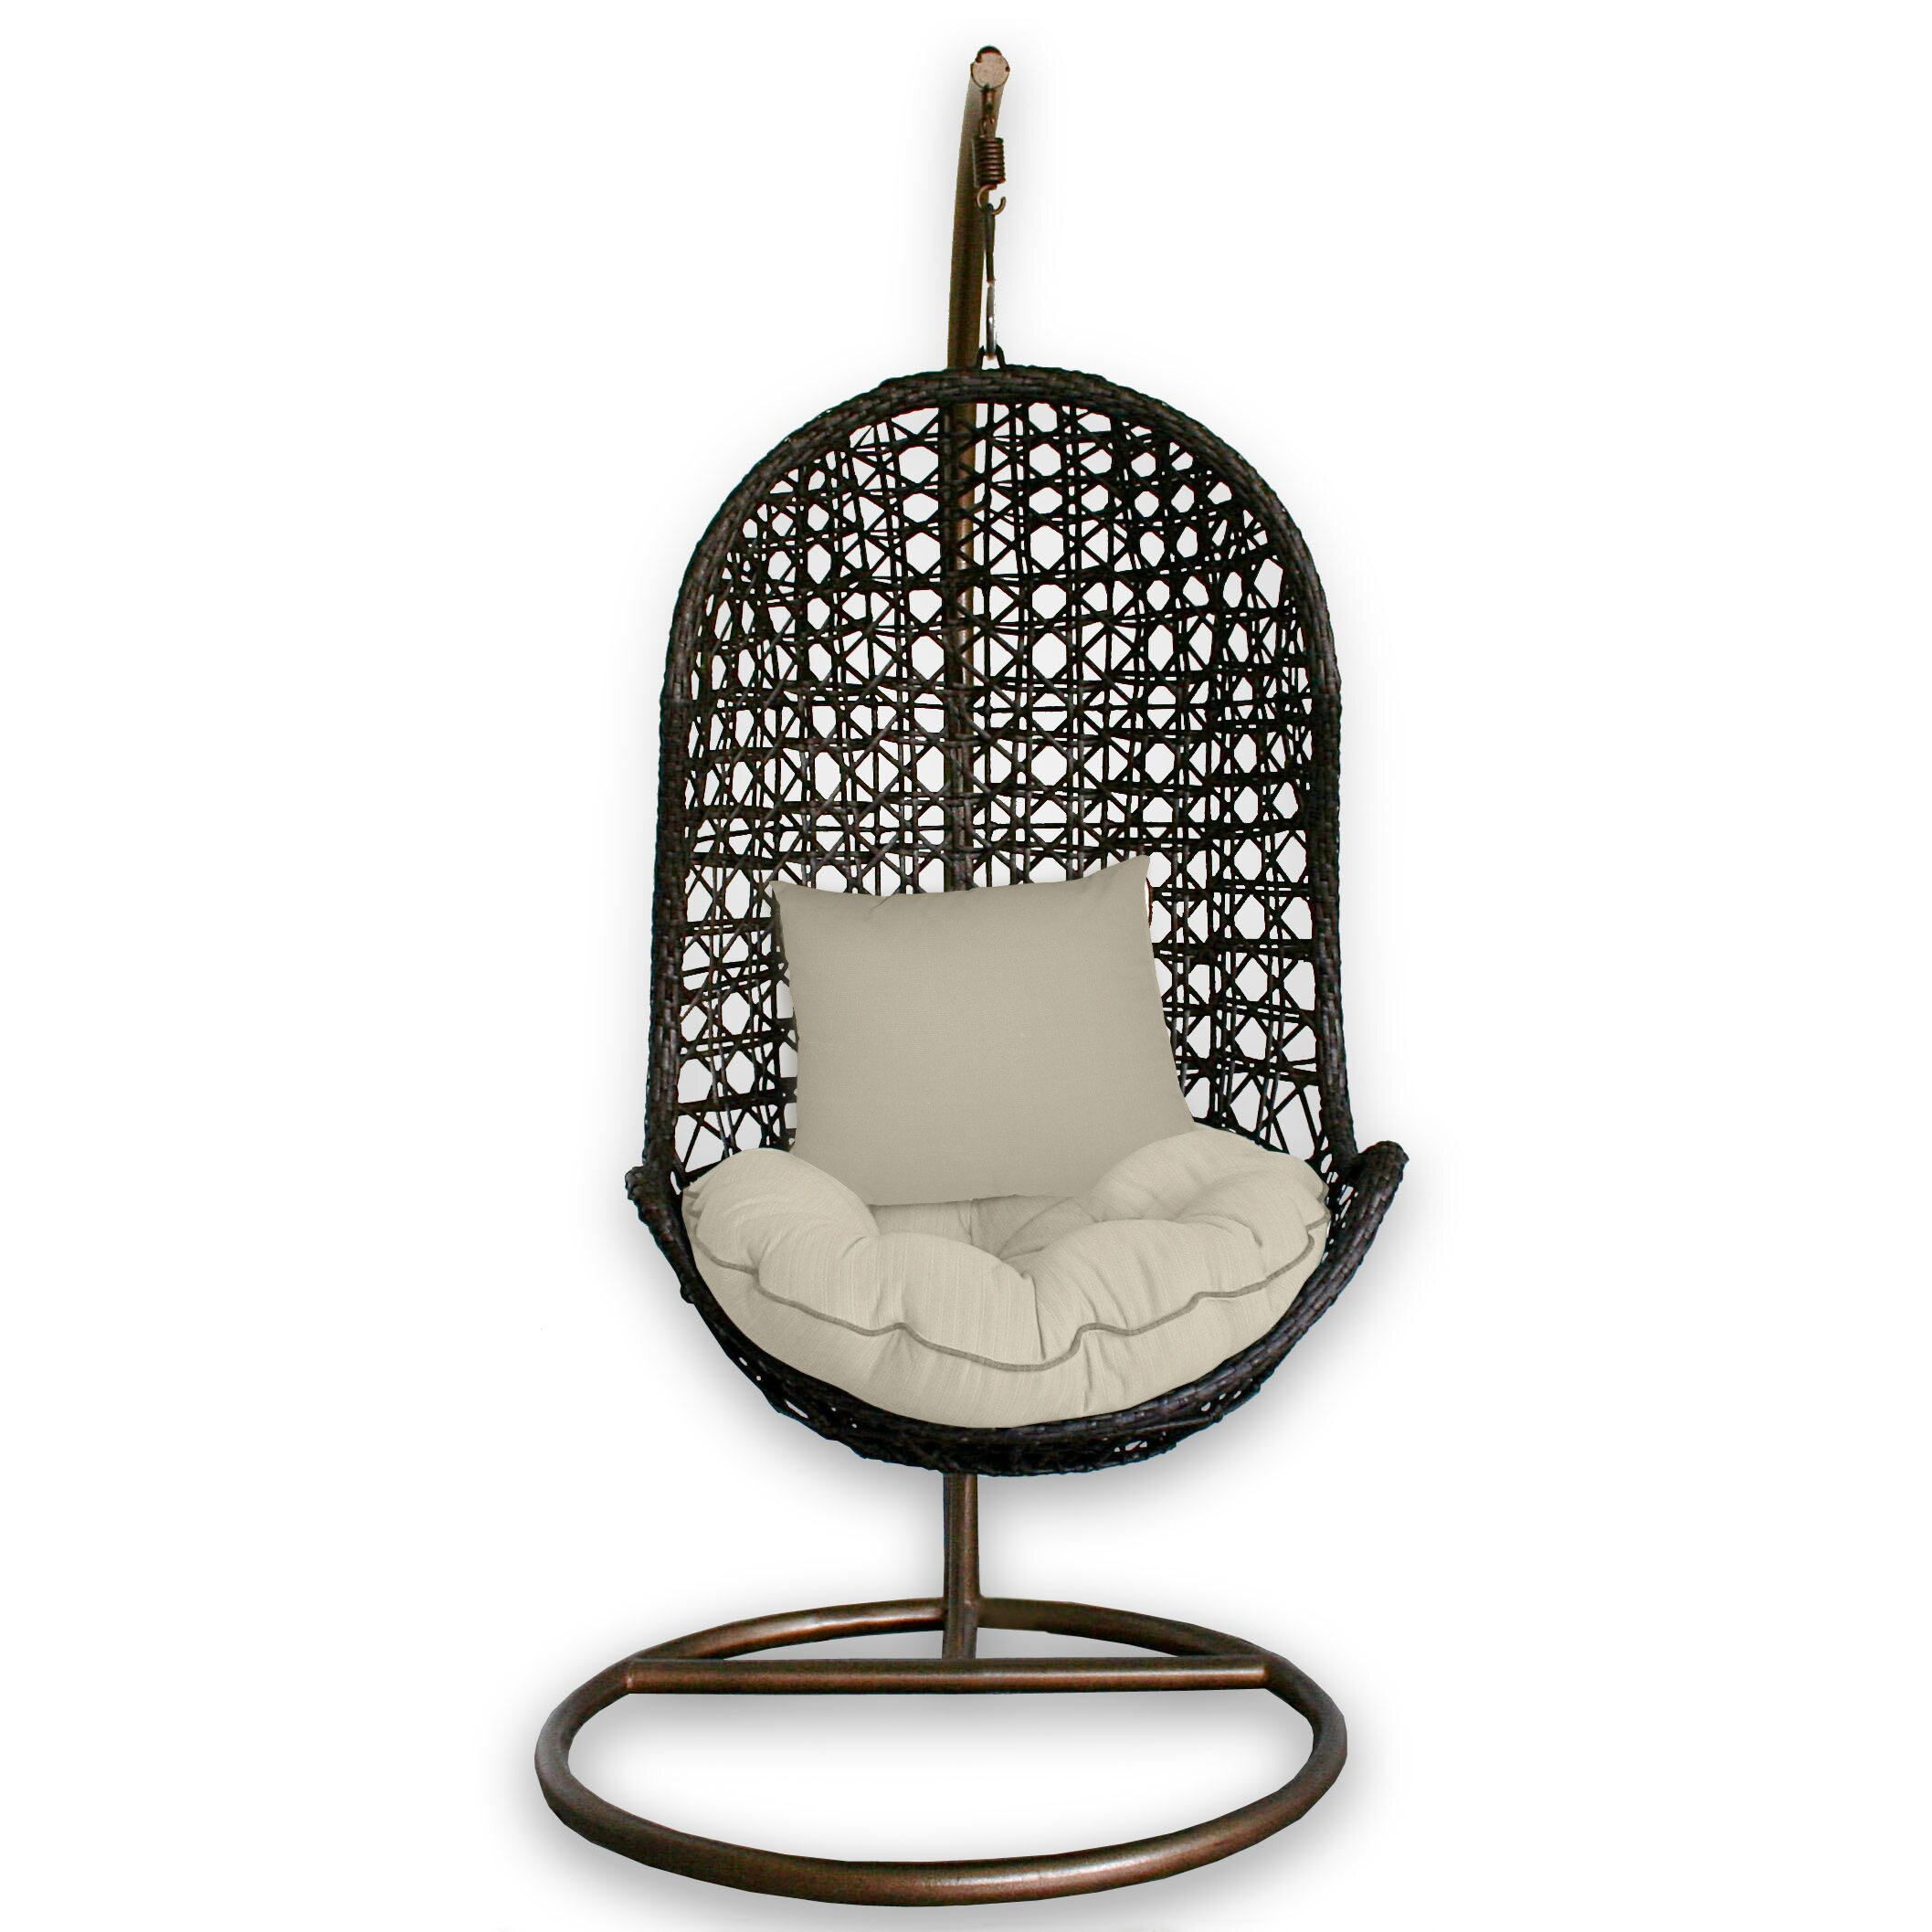 Patio Heaven Skye Bird s Nest Swing Chair with Stand